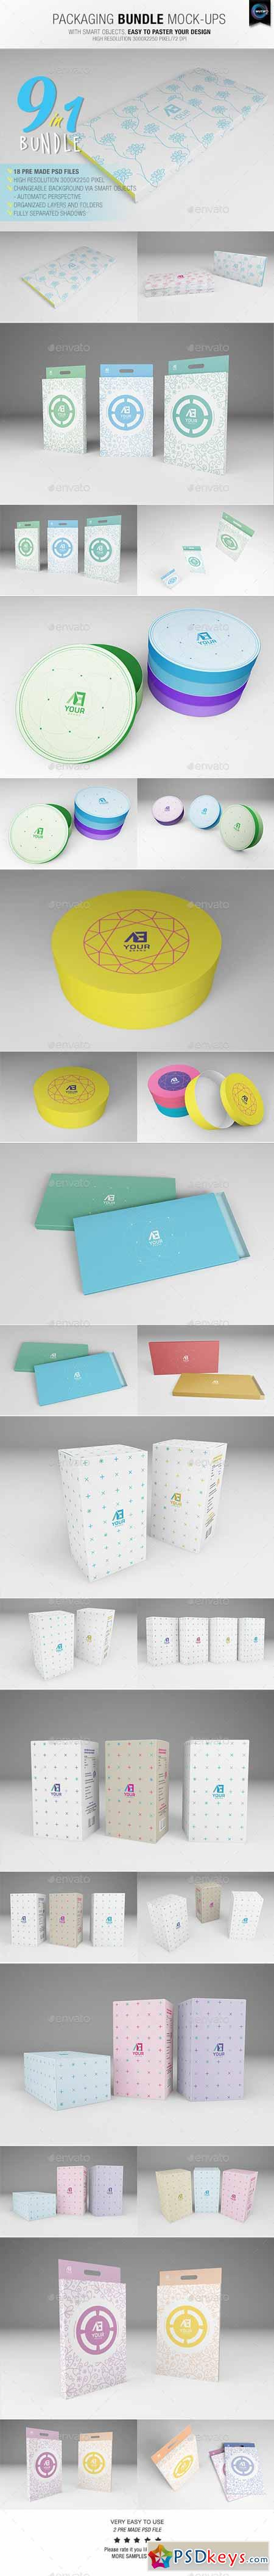 Packaging Bundle Mock-Ups 10754980